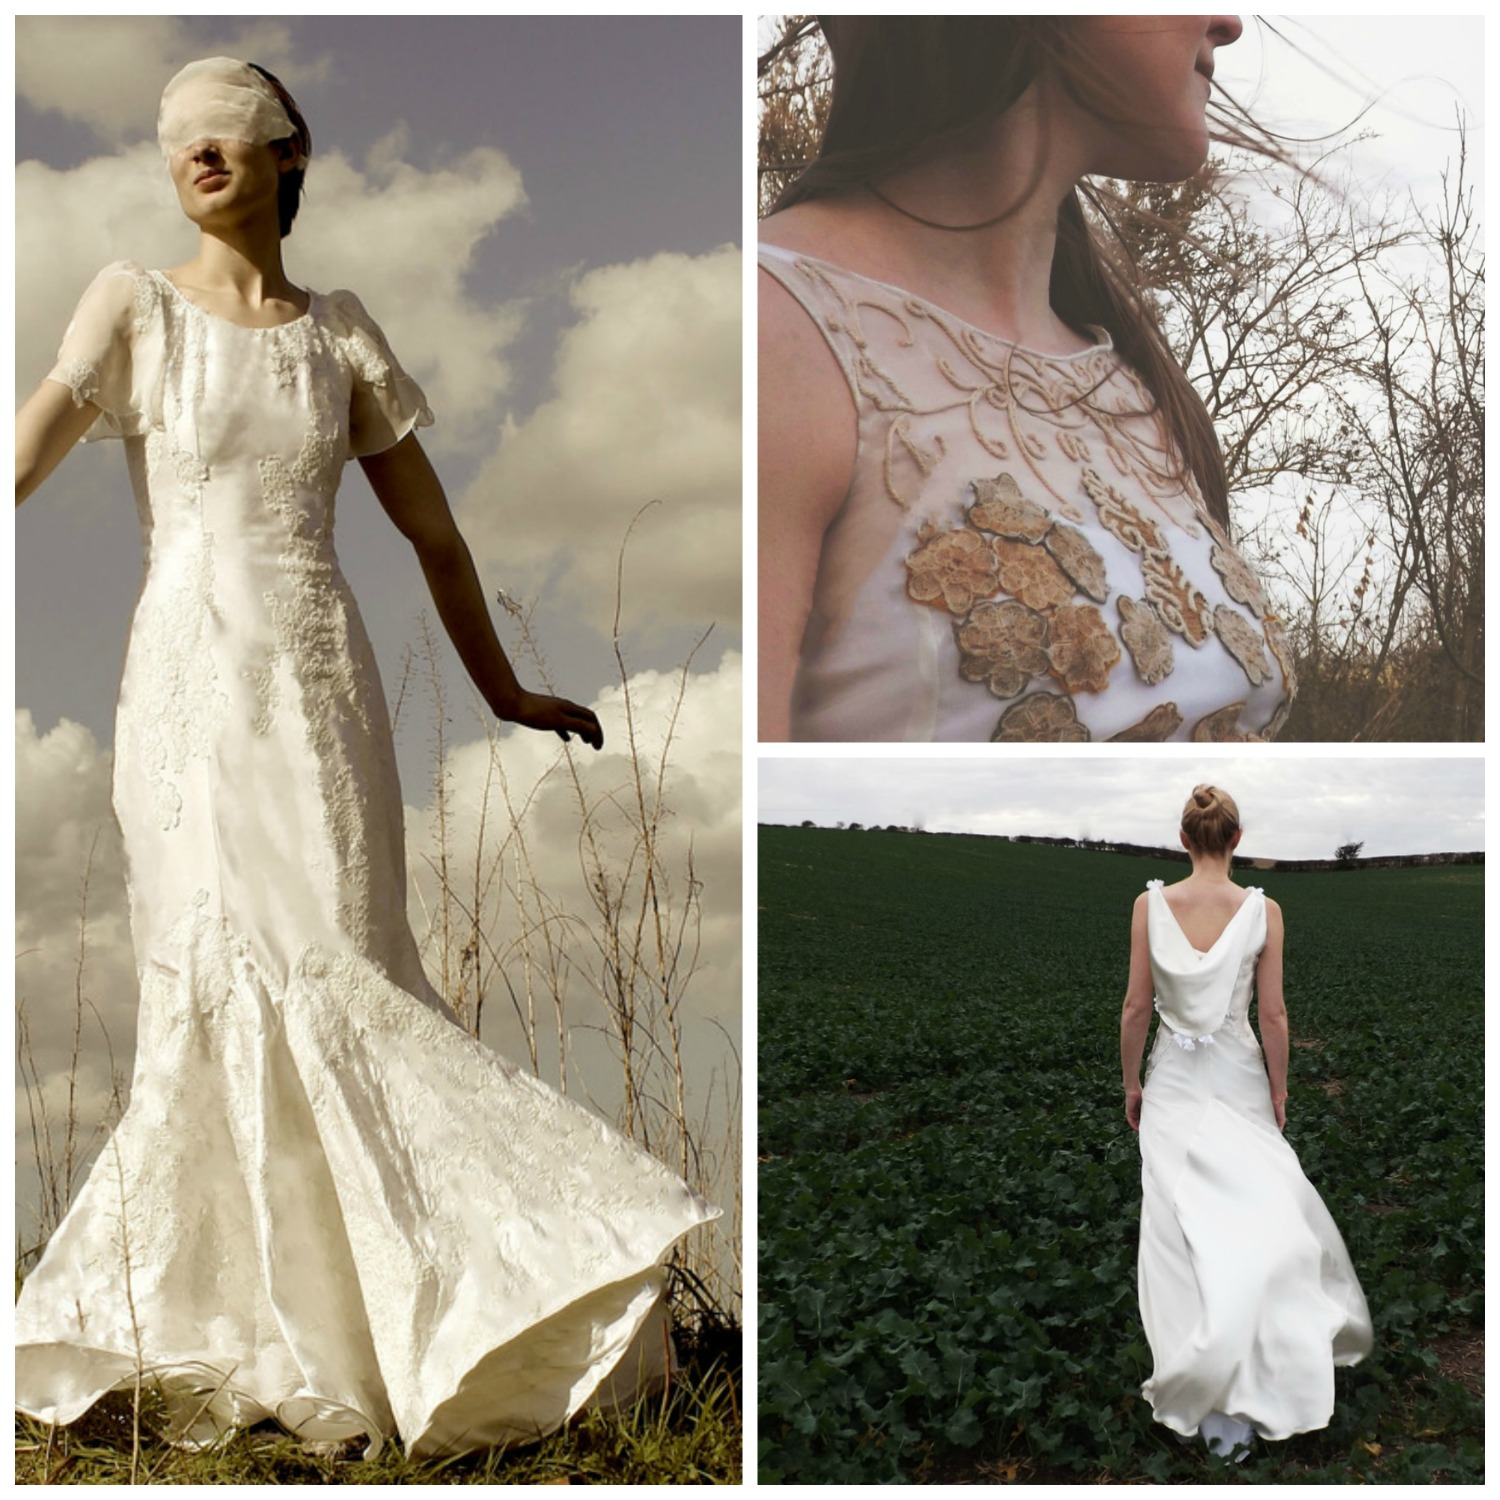 Dresses inspired by (left) stratus clouds, (top right) alto-stratus clouds and (bottom right) trailing roses.